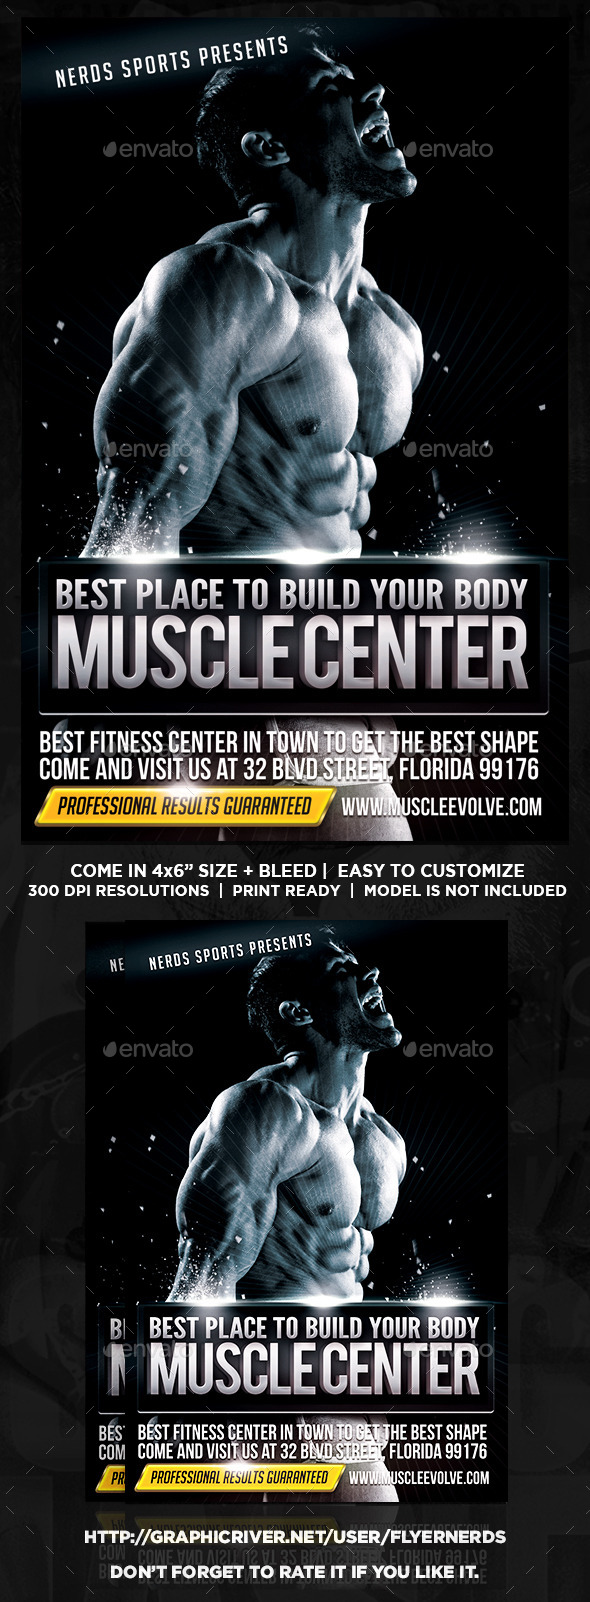 GraphicRiver Muscle Center Sports Flyer 9993798